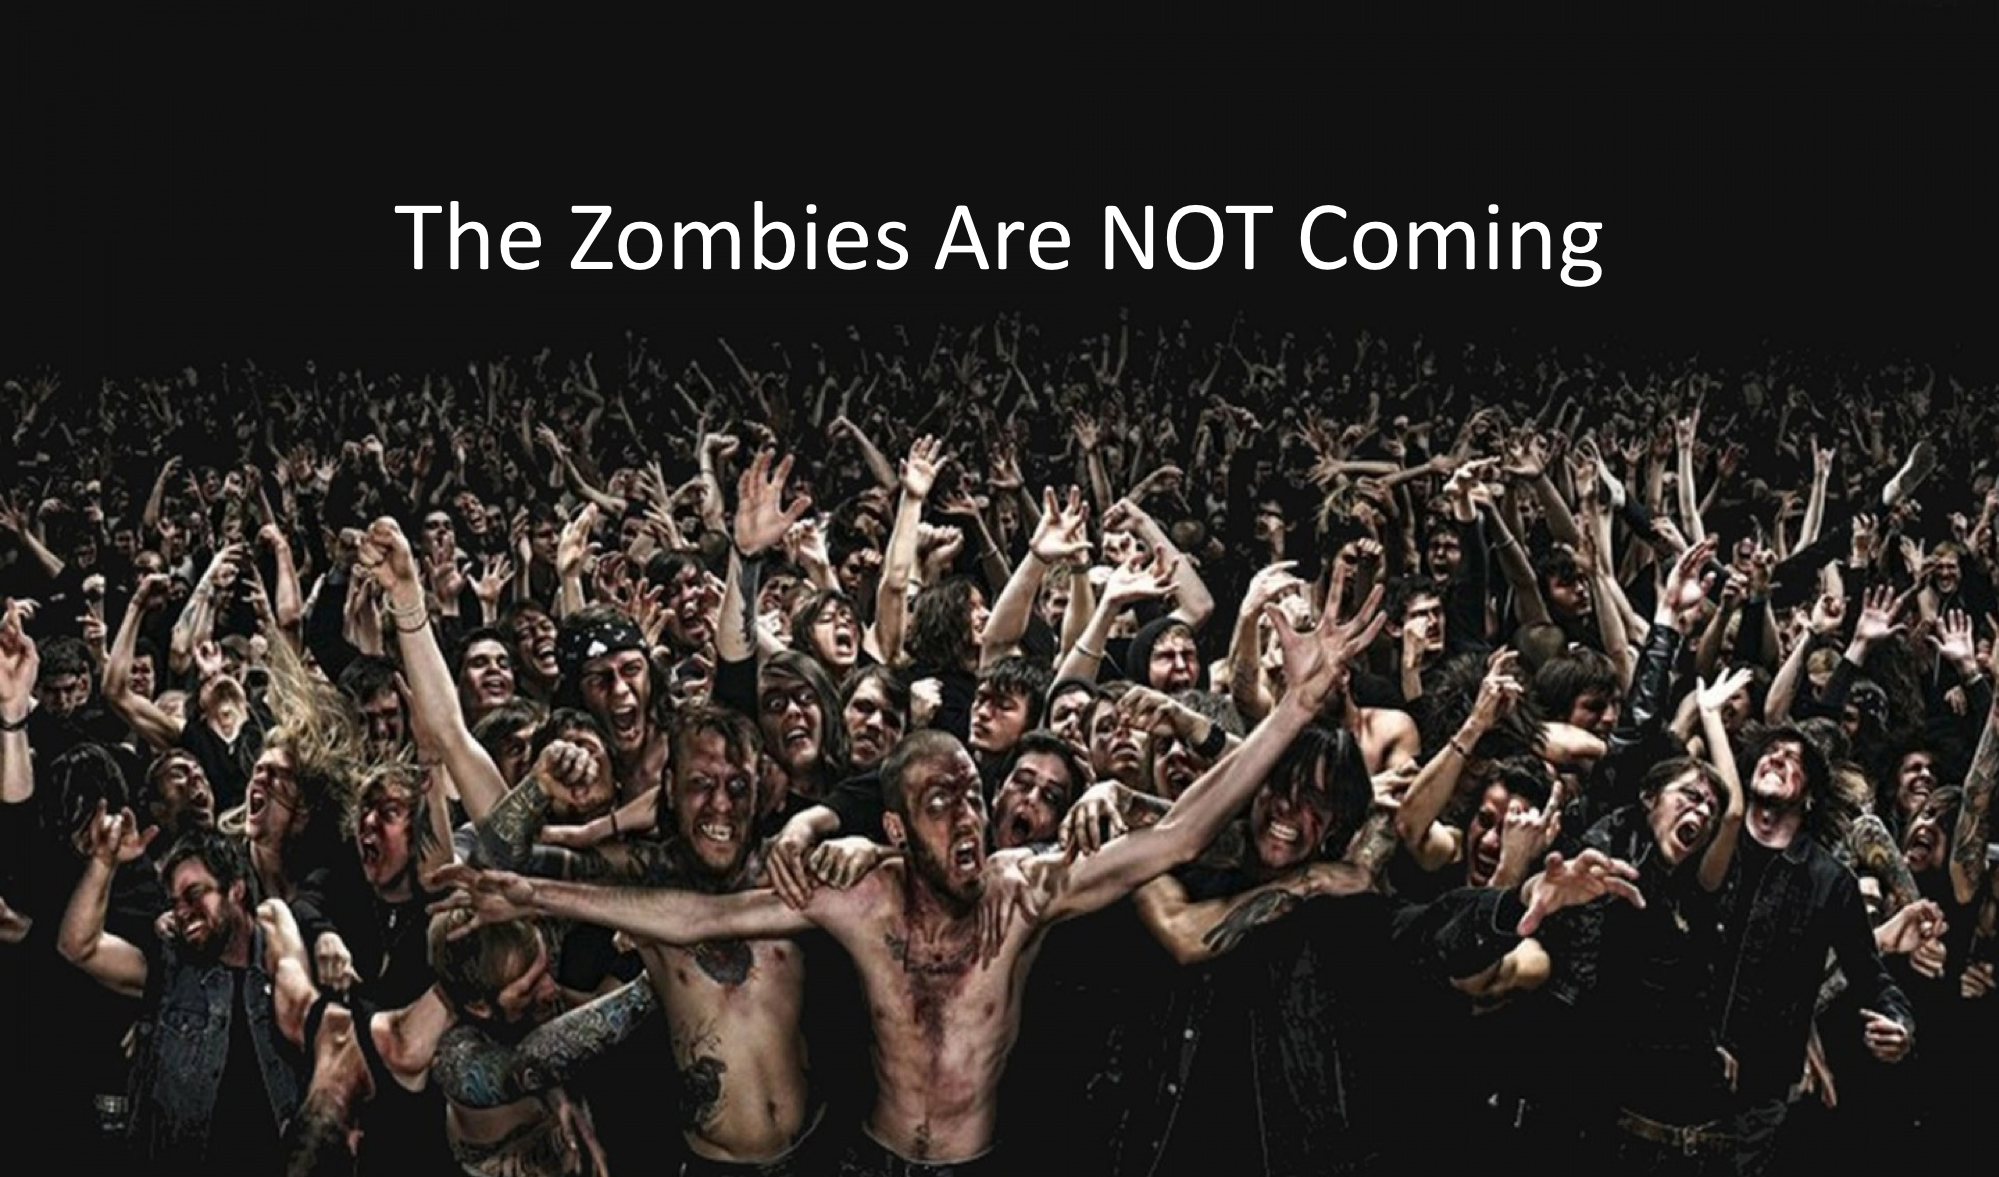 The zombies are coming to destroy your mobile app - the mobile spoon